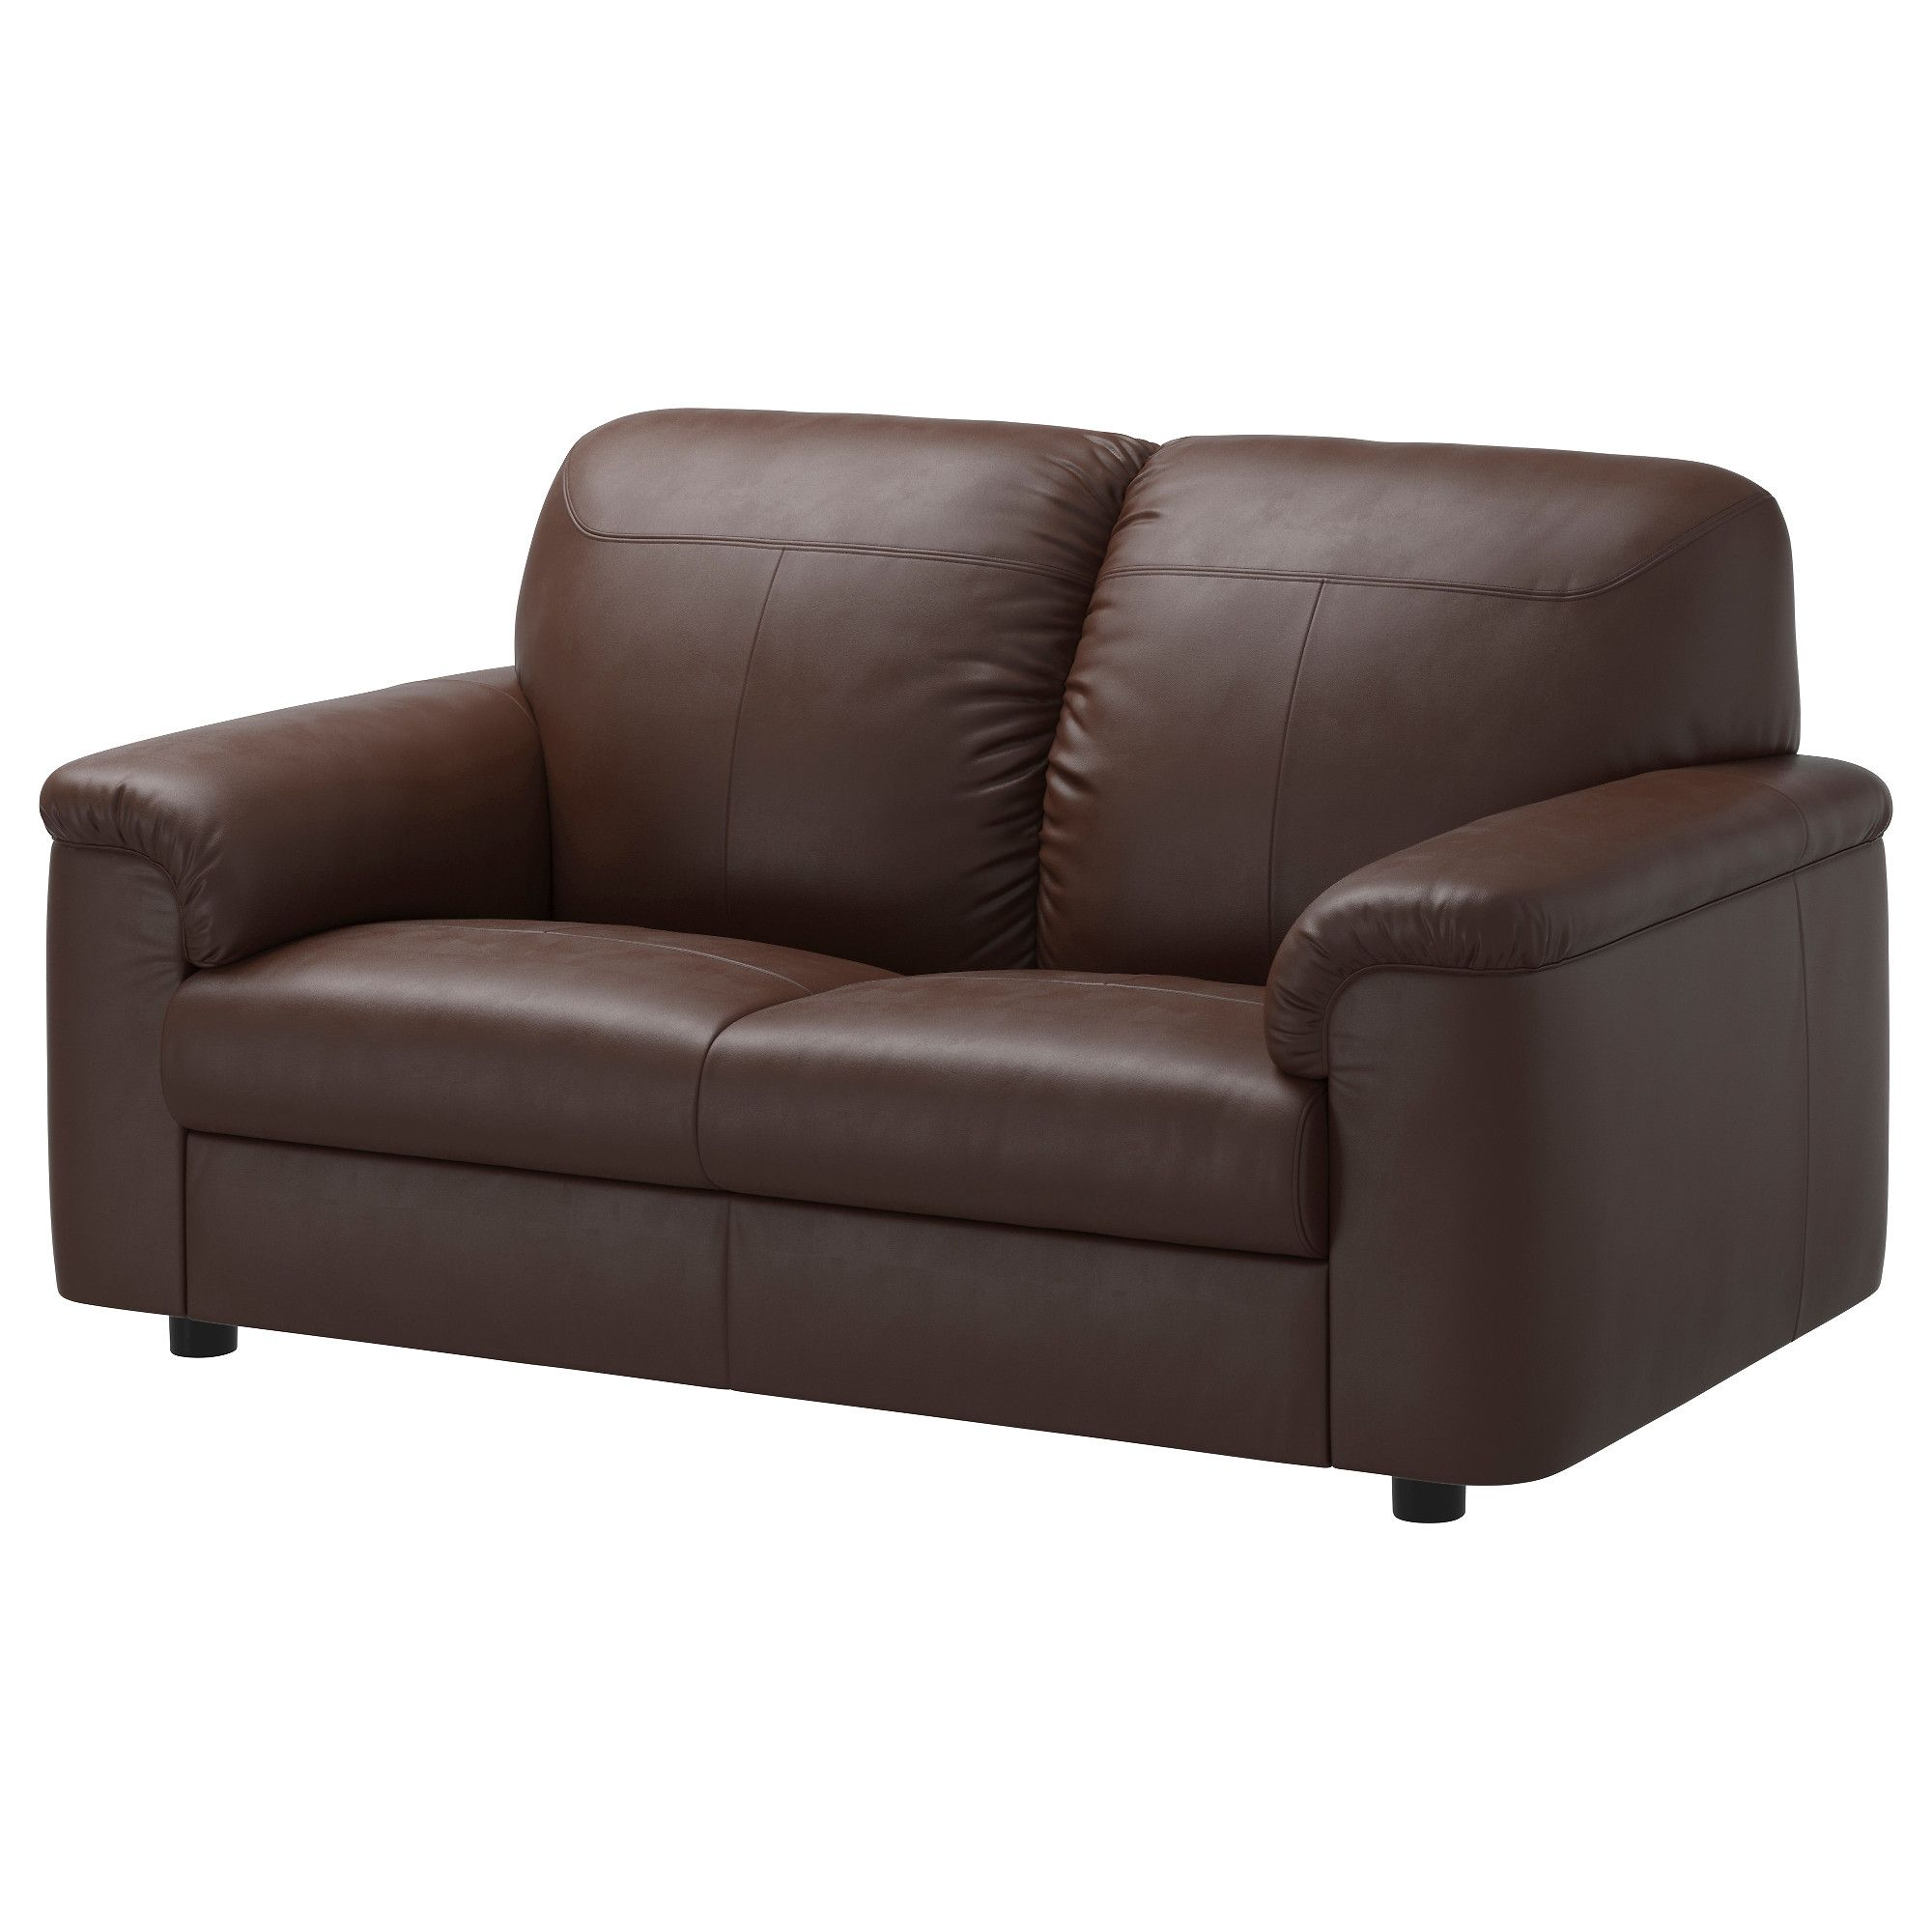 Canapé Ikea Tidafors 2 Places Ikea Timsfors Two Seat Sofa Mjuk Kimstad Dark Brown Contact